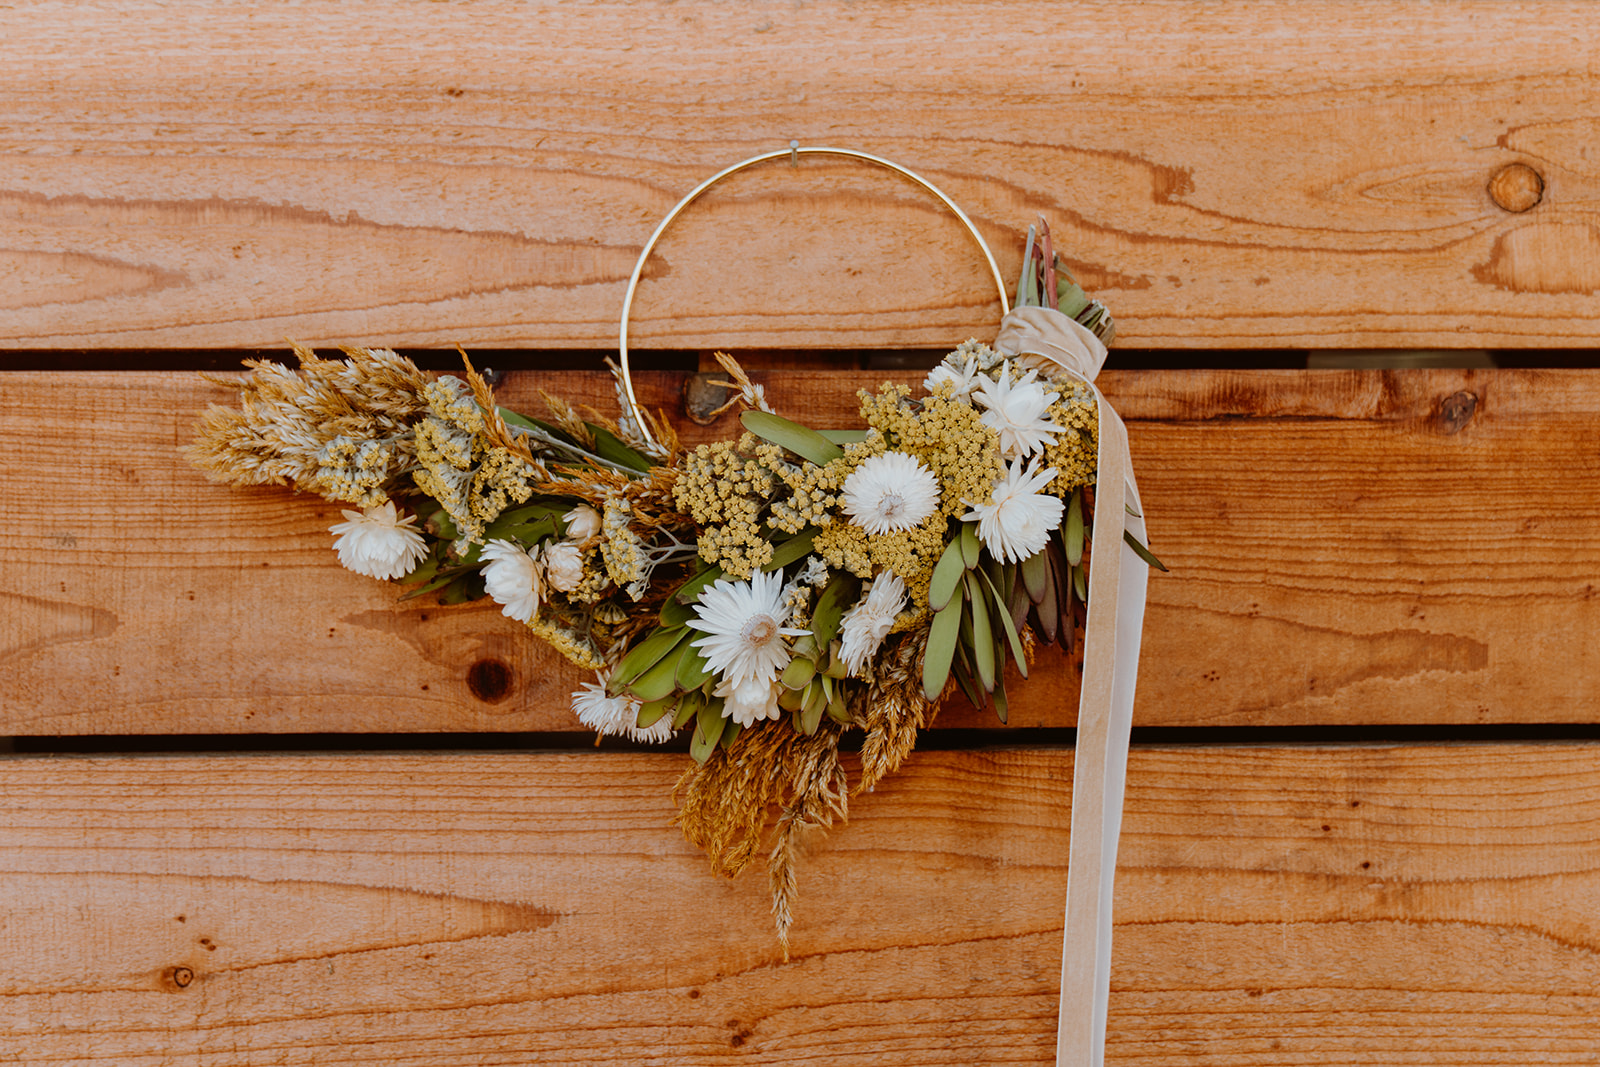 Wreath made up of dried flowers, leaves, branches and large ribbon.